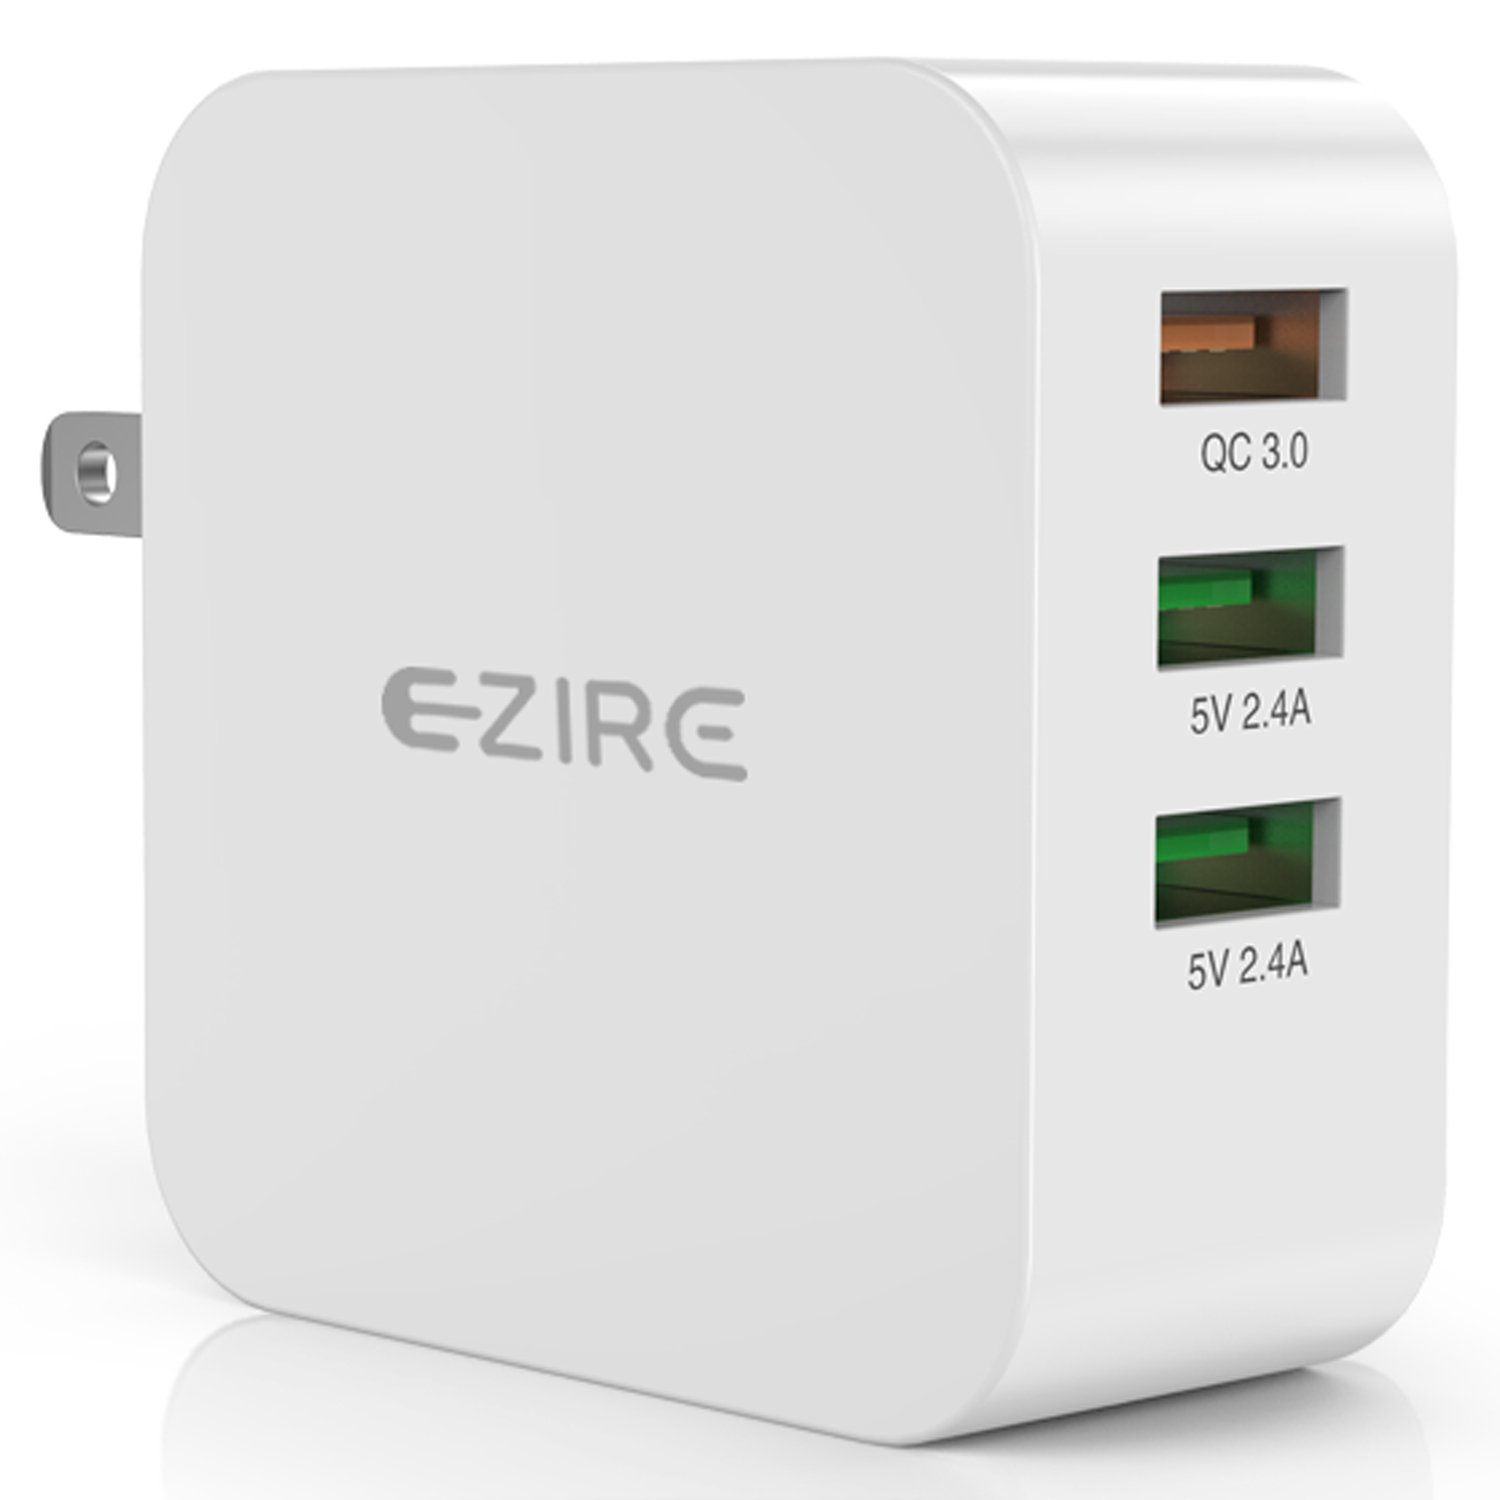 Quick Charge 3.0 USB Charger, Ezire 36W Wall Charger Adapter 3-Port USB Power Adapter with SmartID Compatible for Galaxy Note 5/4, S7/S6/Edge, iPhone8Plus/Iphone8, iPad and More